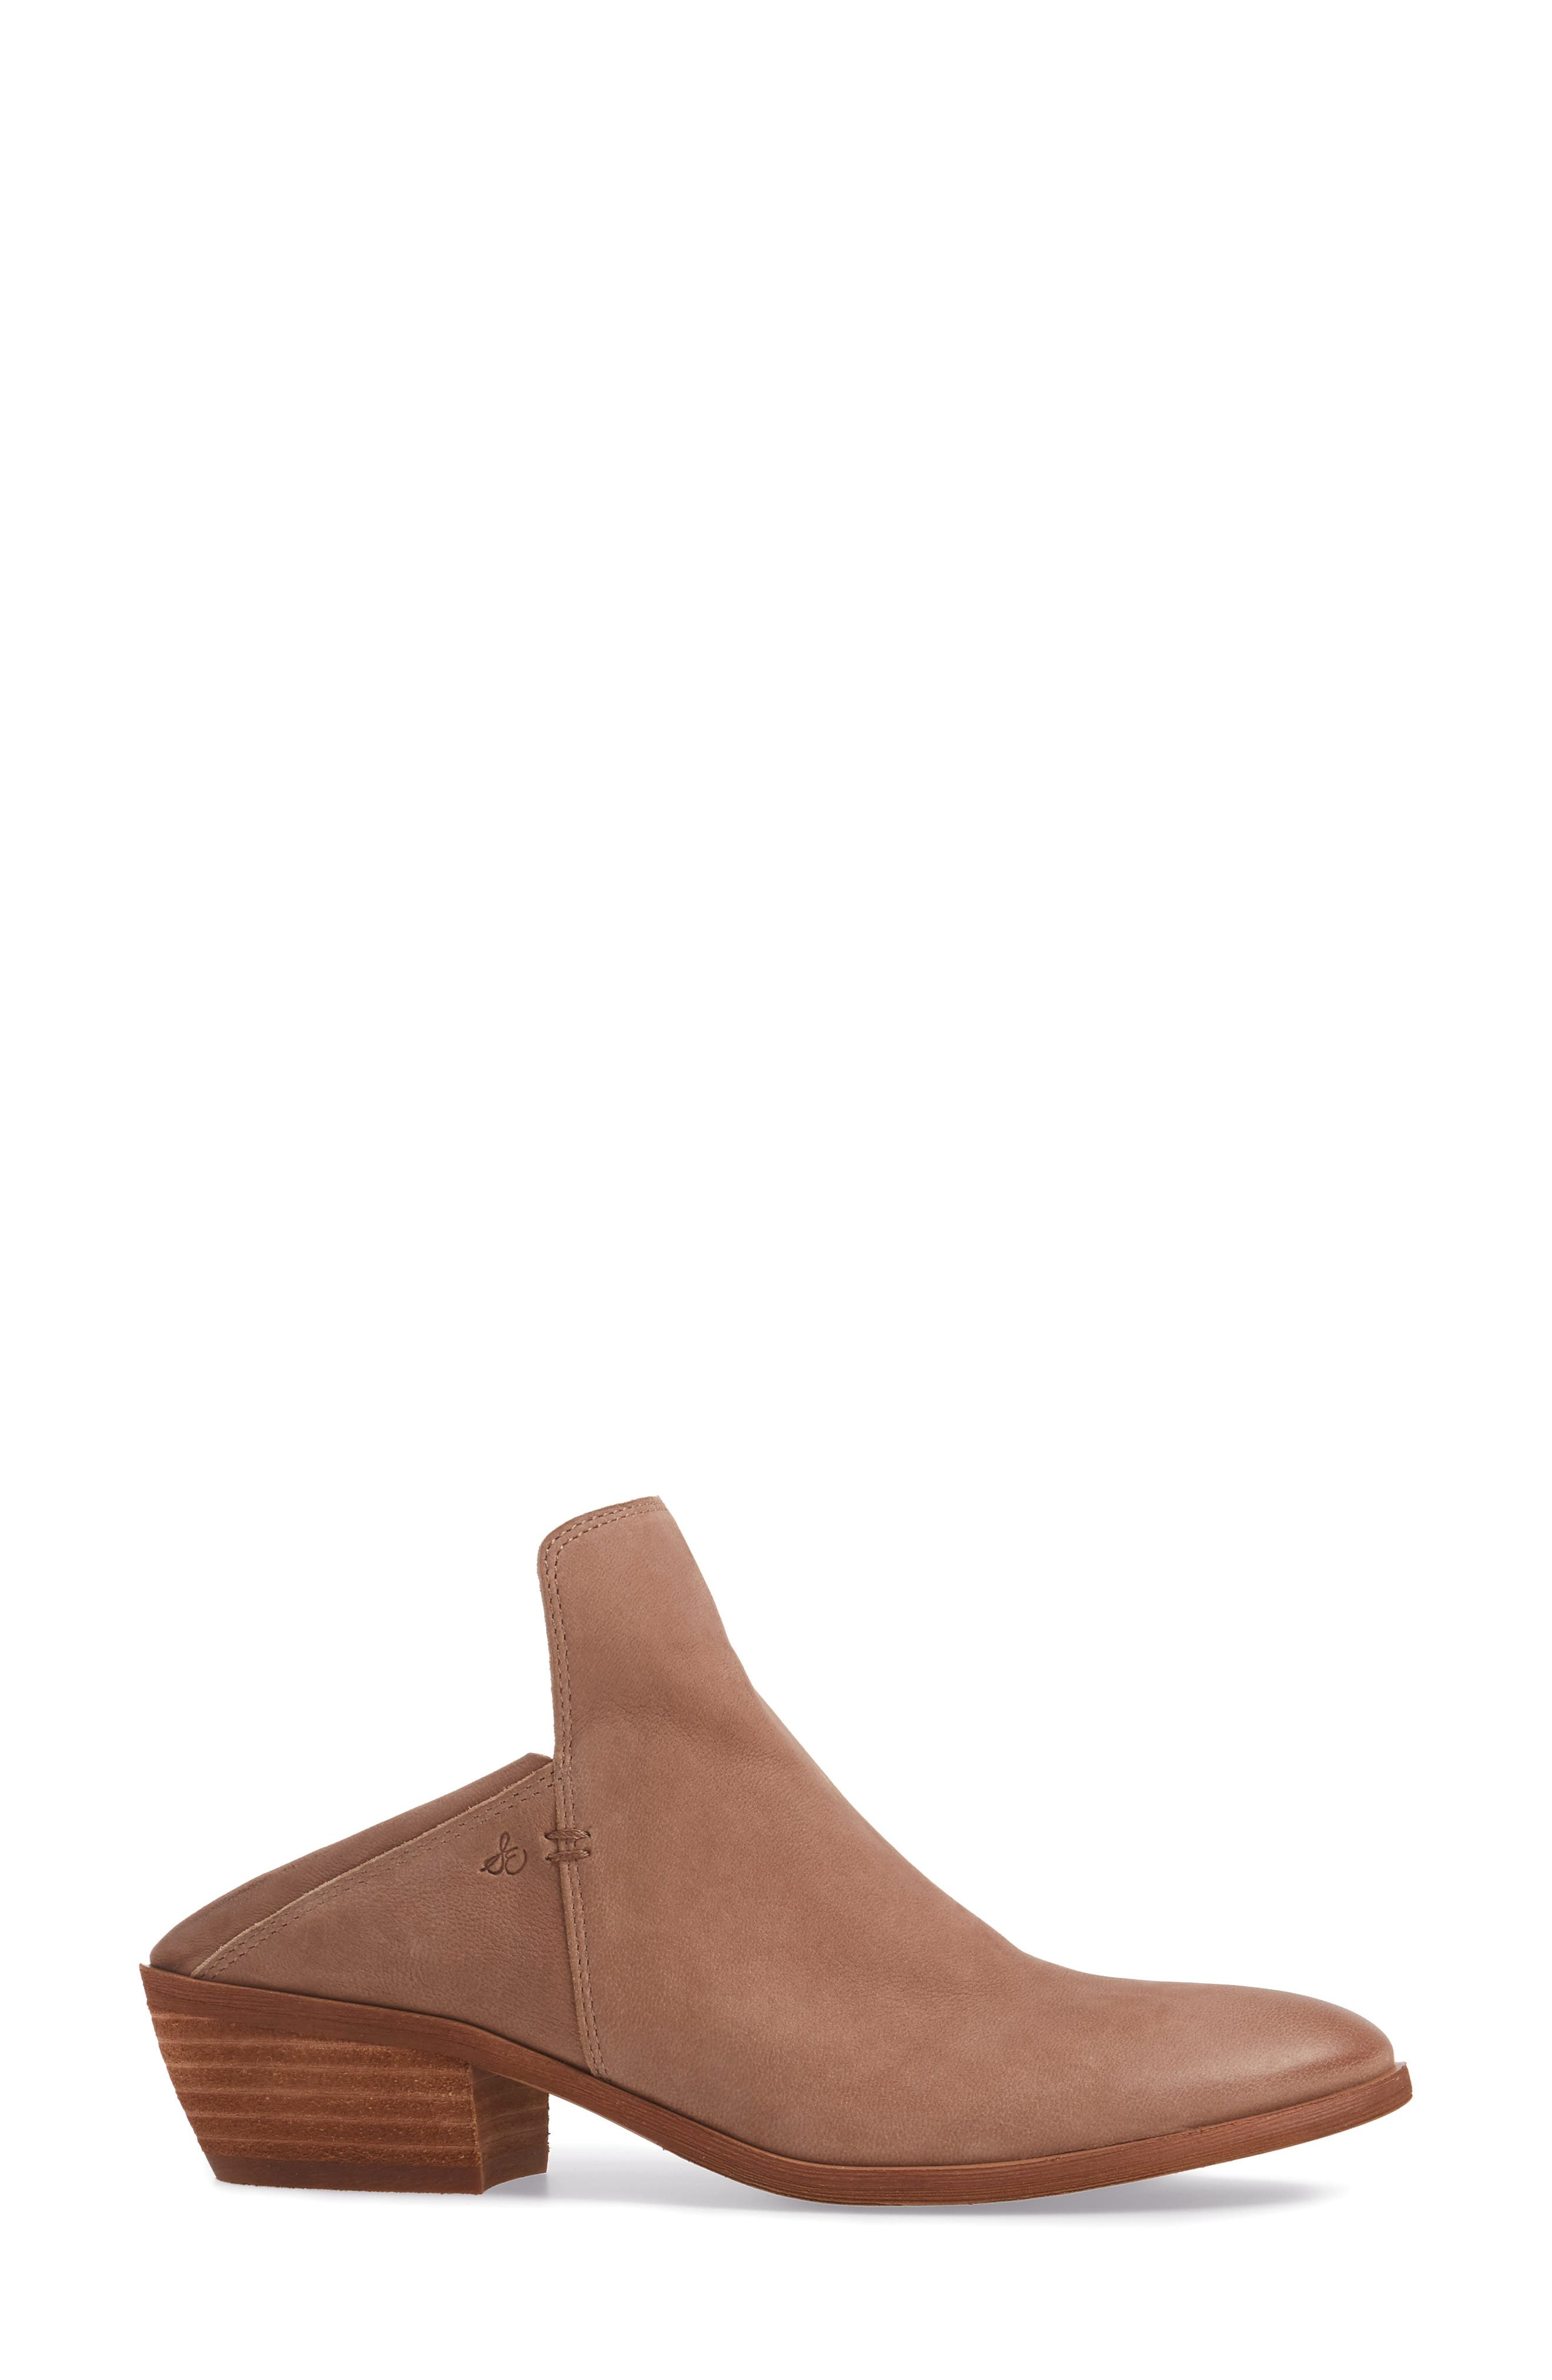 Prentice Convertible Ankle Boot,                             Alternate thumbnail 15, color,